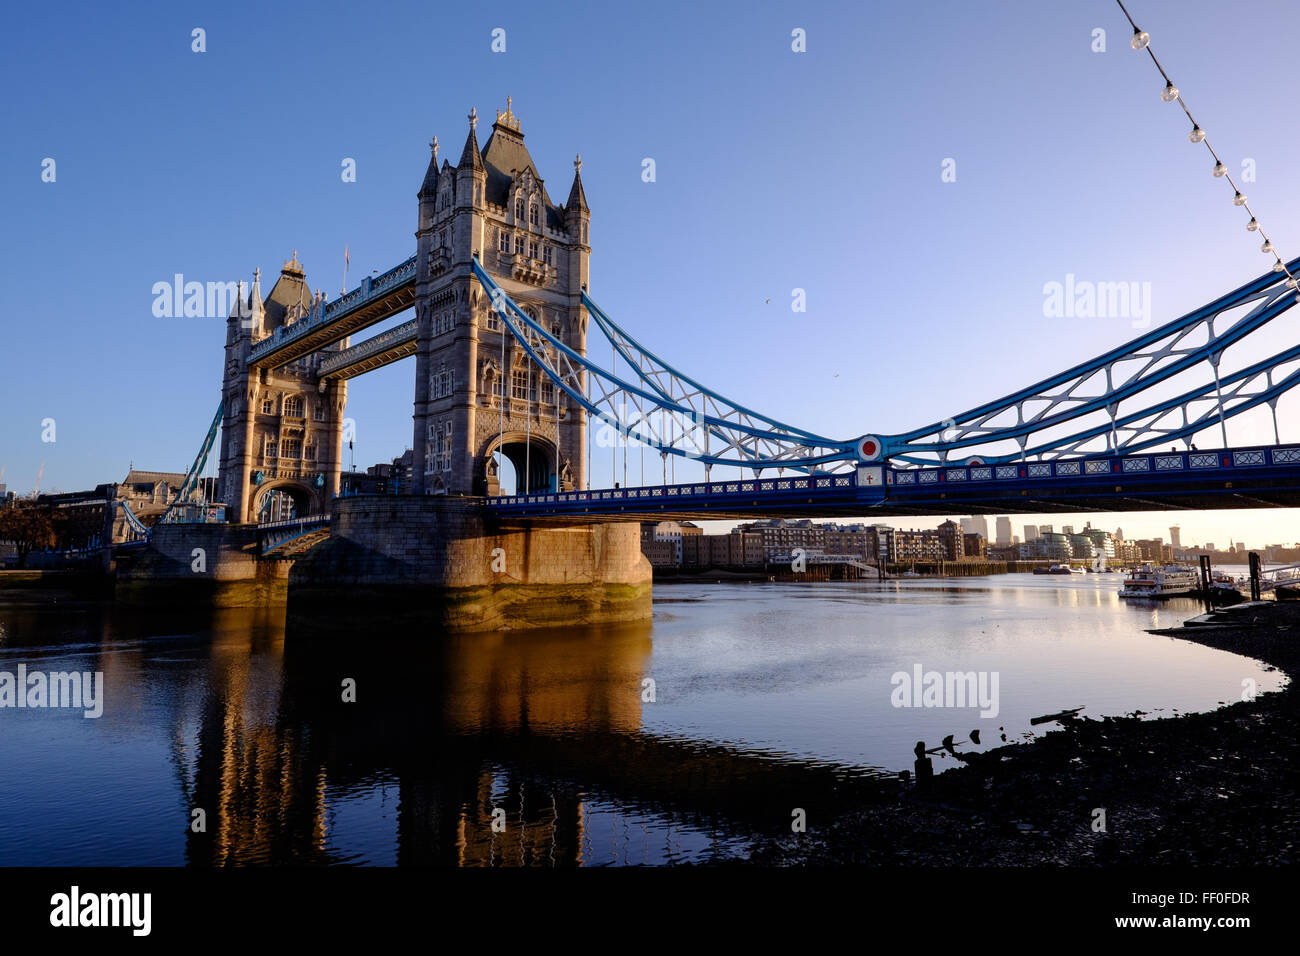 The Tower of London Bridge in all of it's glory during a beautiful sunrise. - Stock Image